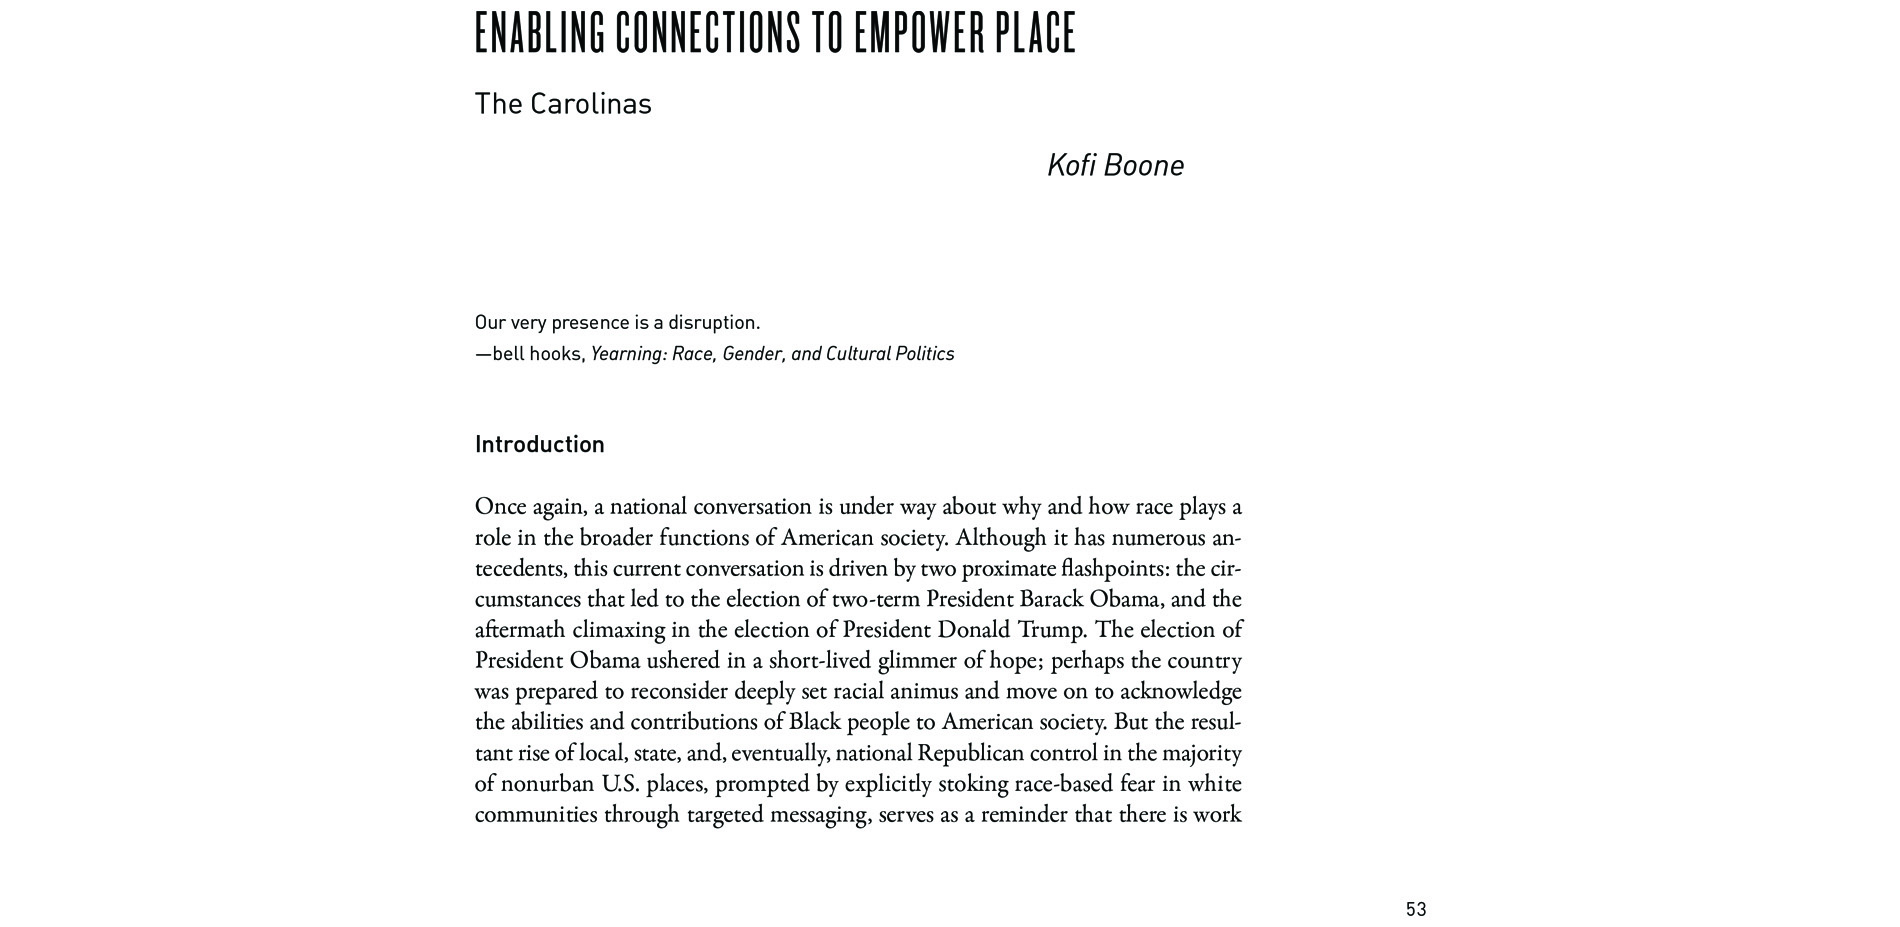 Black Landscapes Matter, Enabling Connections to Empower Place: The Carolinas (pg. 53)